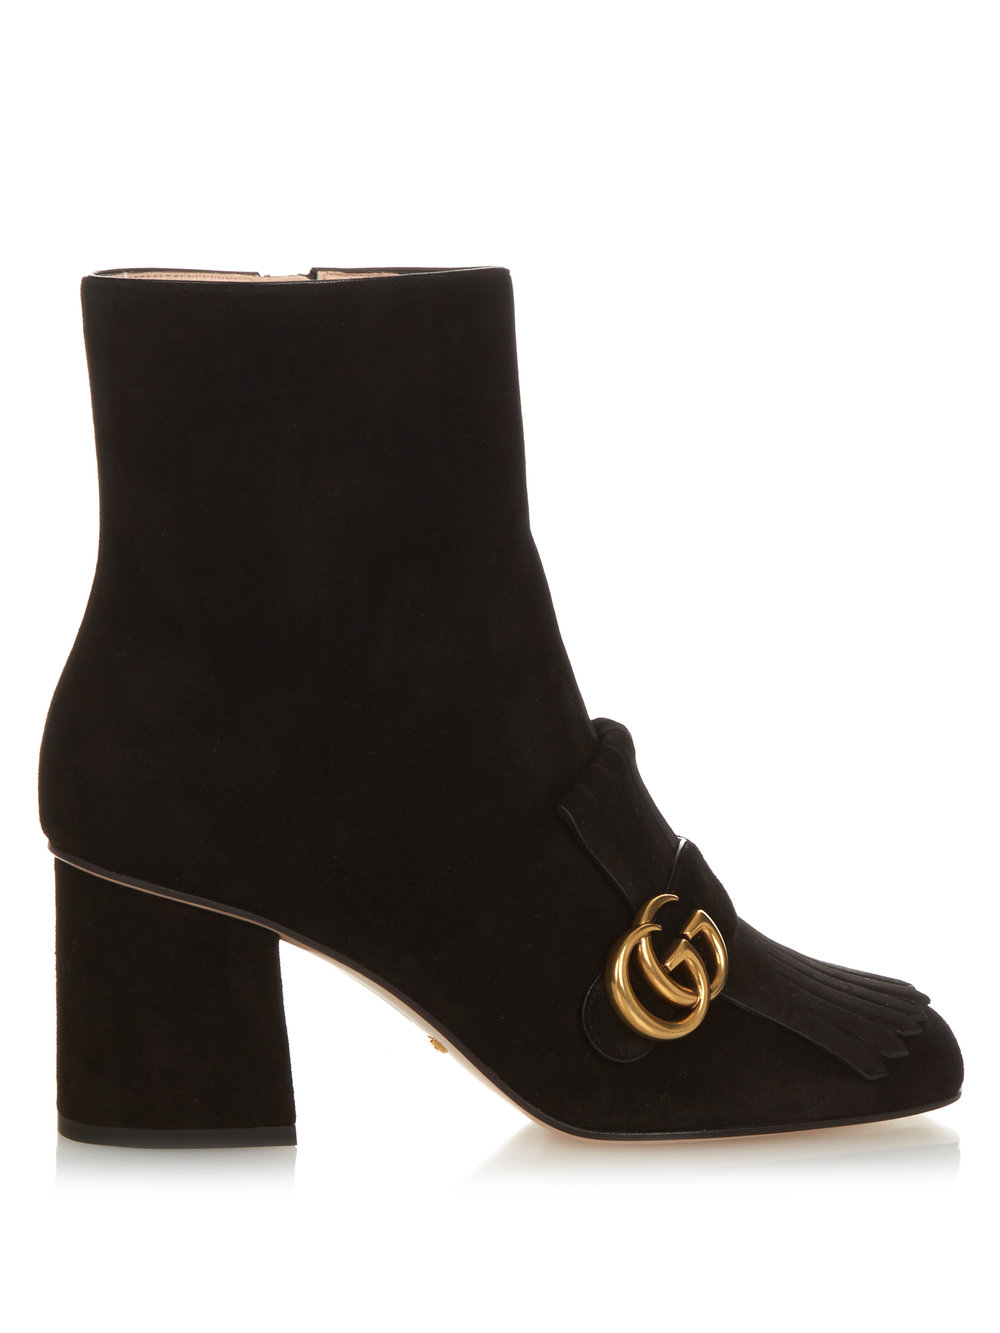 Black Suede Block Heel Boots with Mega G Buckle   Gucci £710